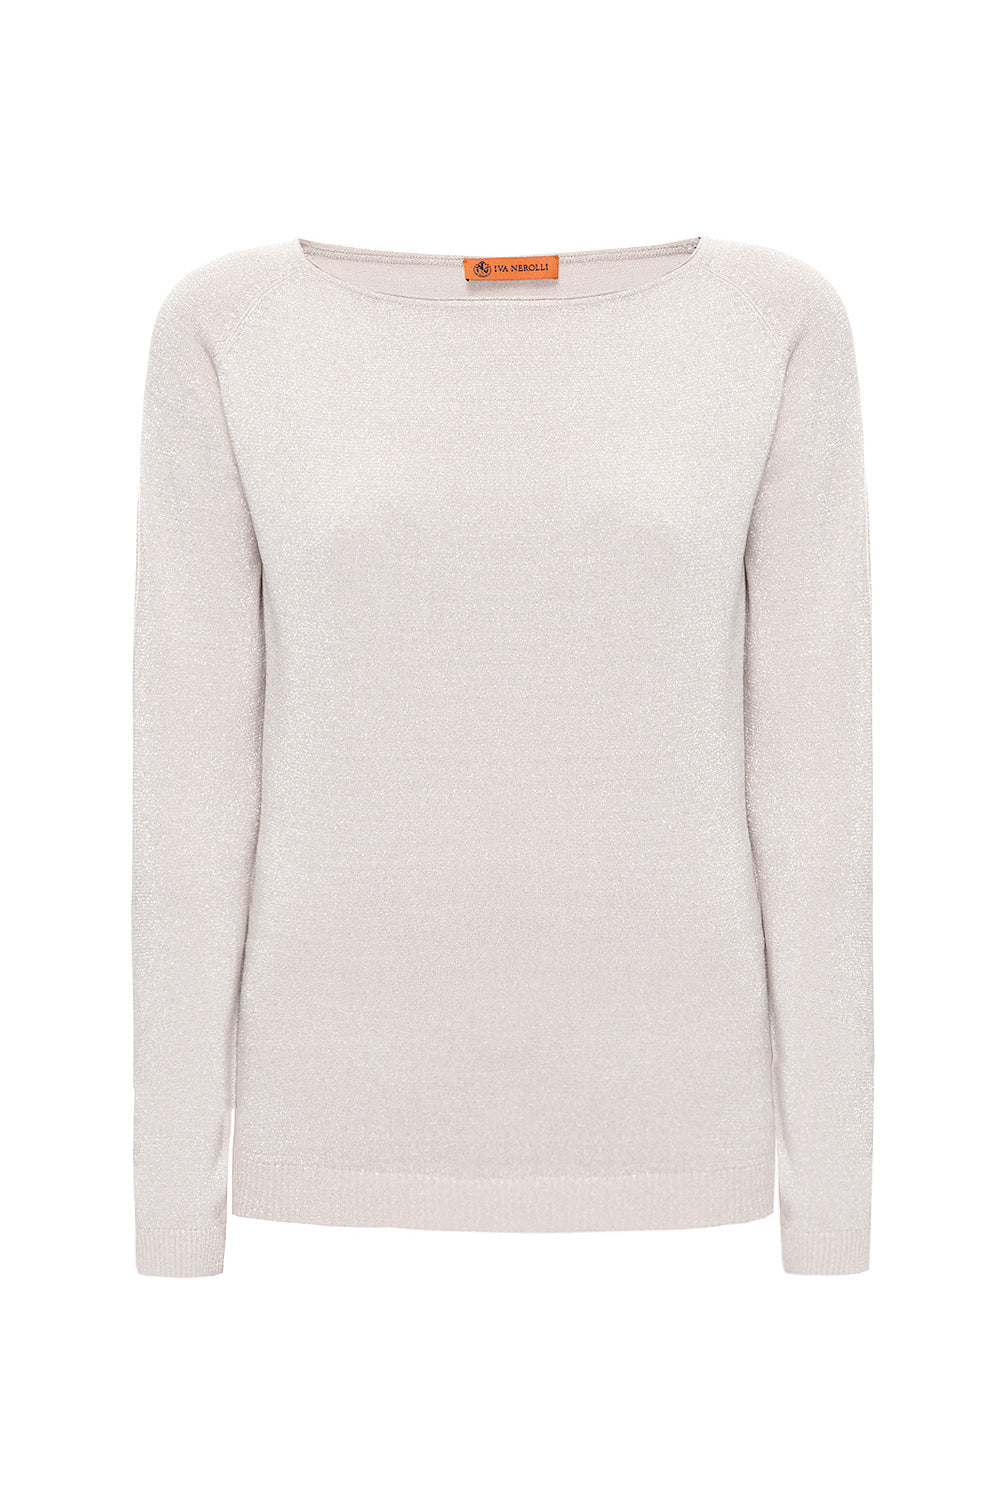 Beige Lurex Sweater